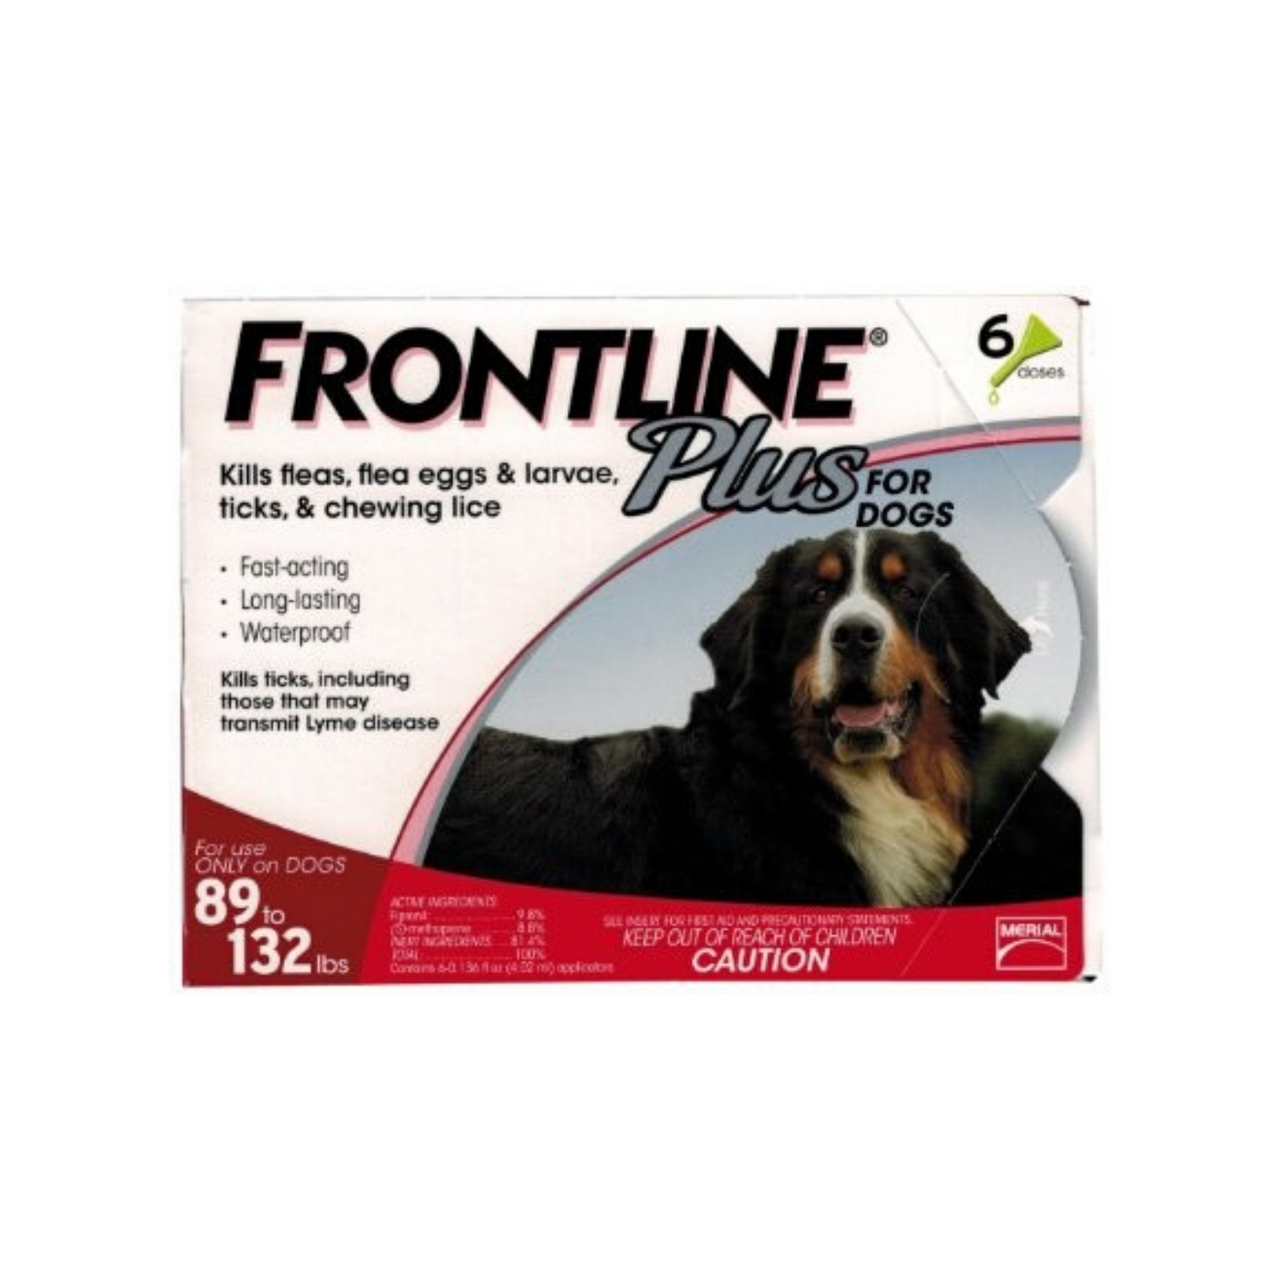 Frontline Plus 89-132lbs (3 Months)